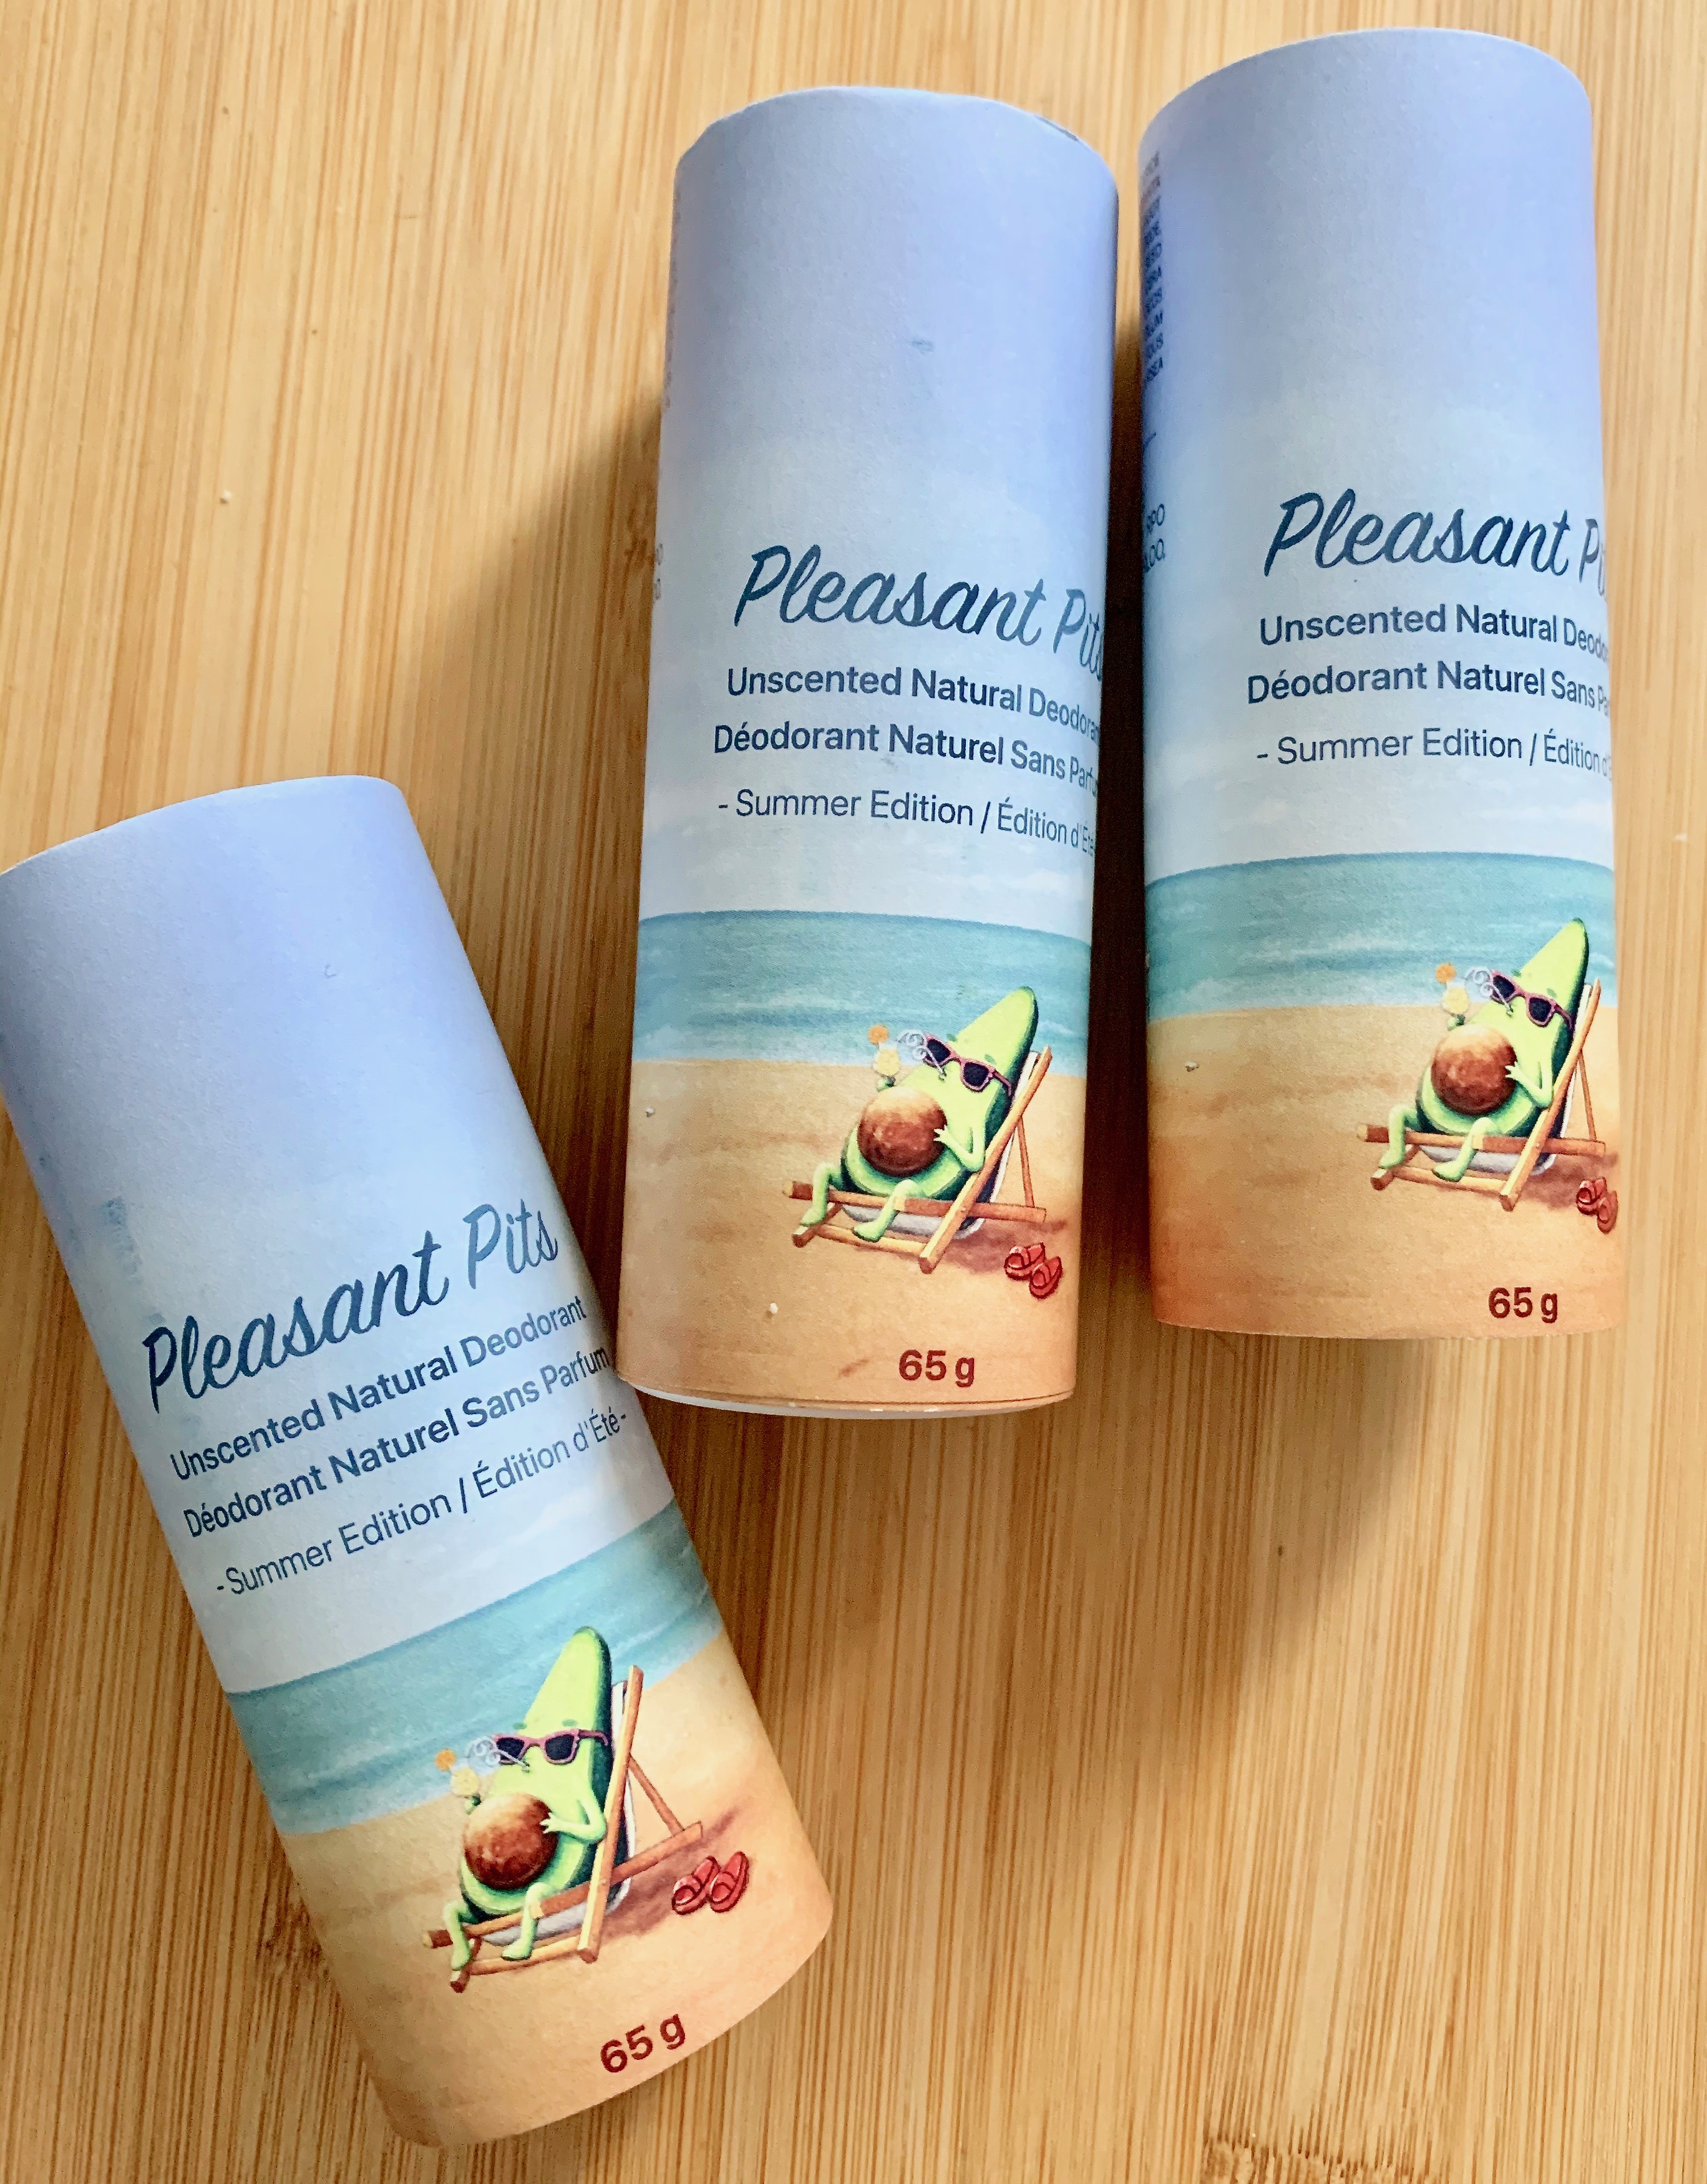 Pleasant Pits Unscented Natural Deodorant